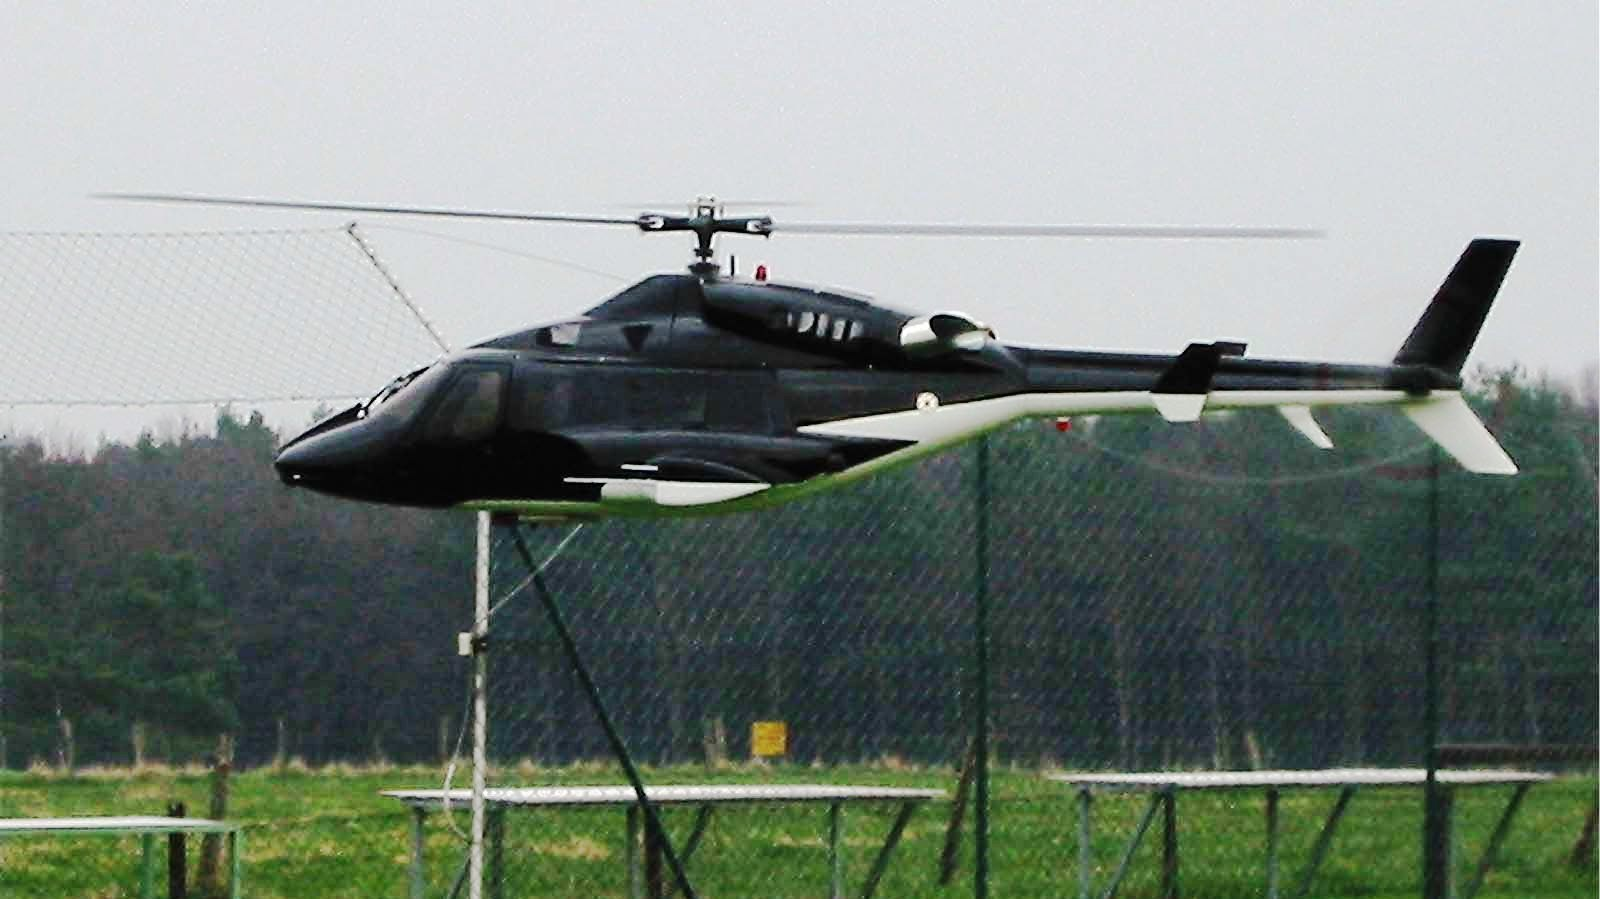 Pin Airwolf-helicopter-aviation-hd-wallpapers-wallpaper on ...